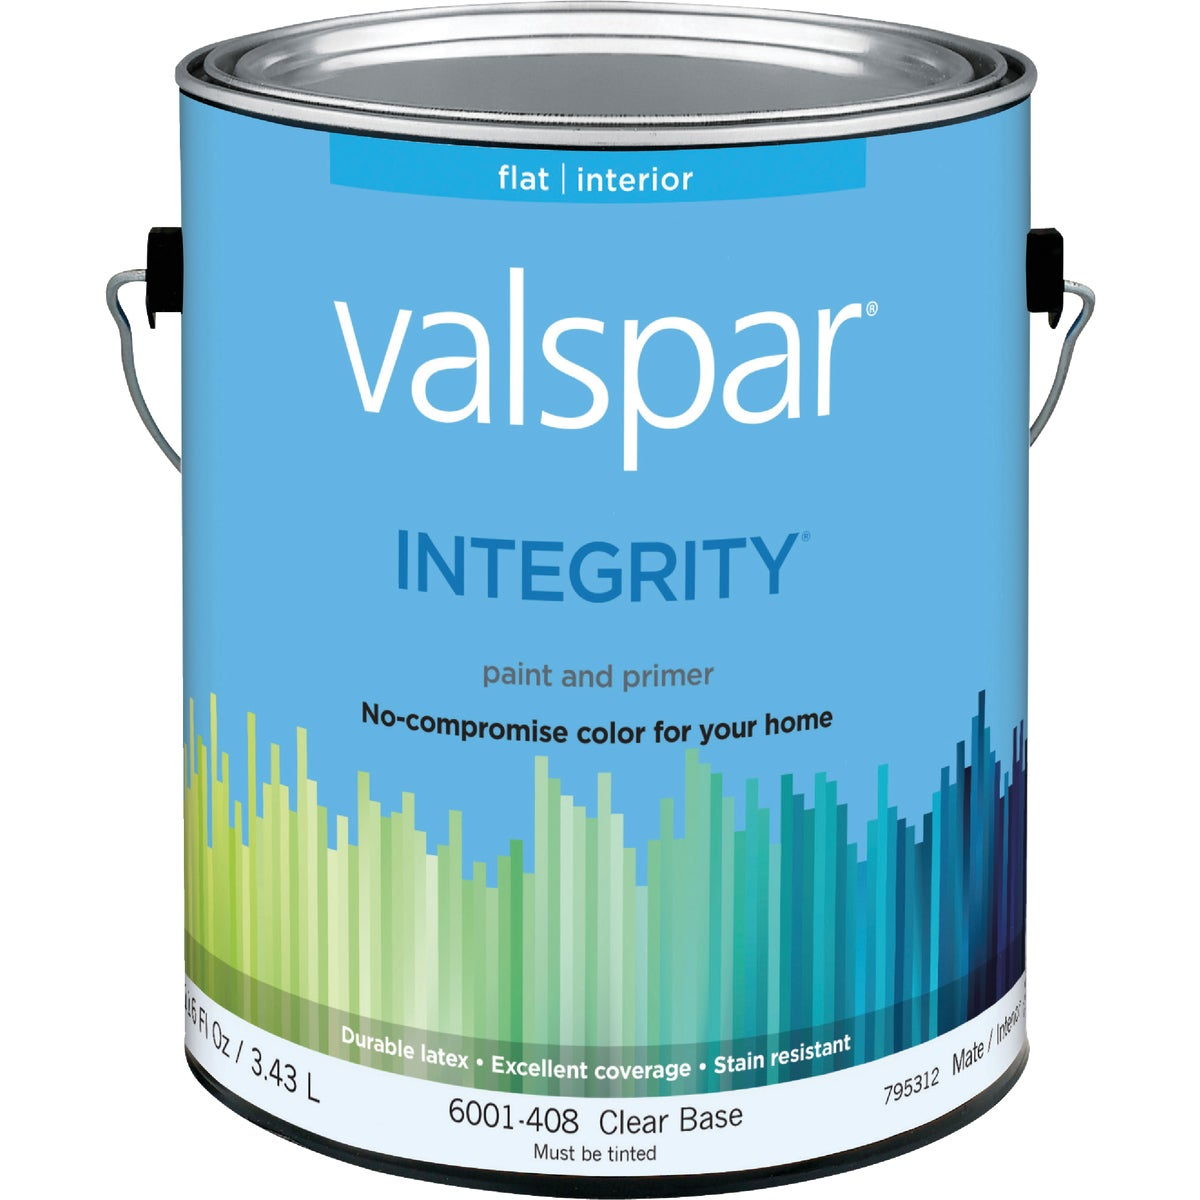 INT FLAT CLEAR BS PAINT - 004.6001408.007 by Valspar Corp